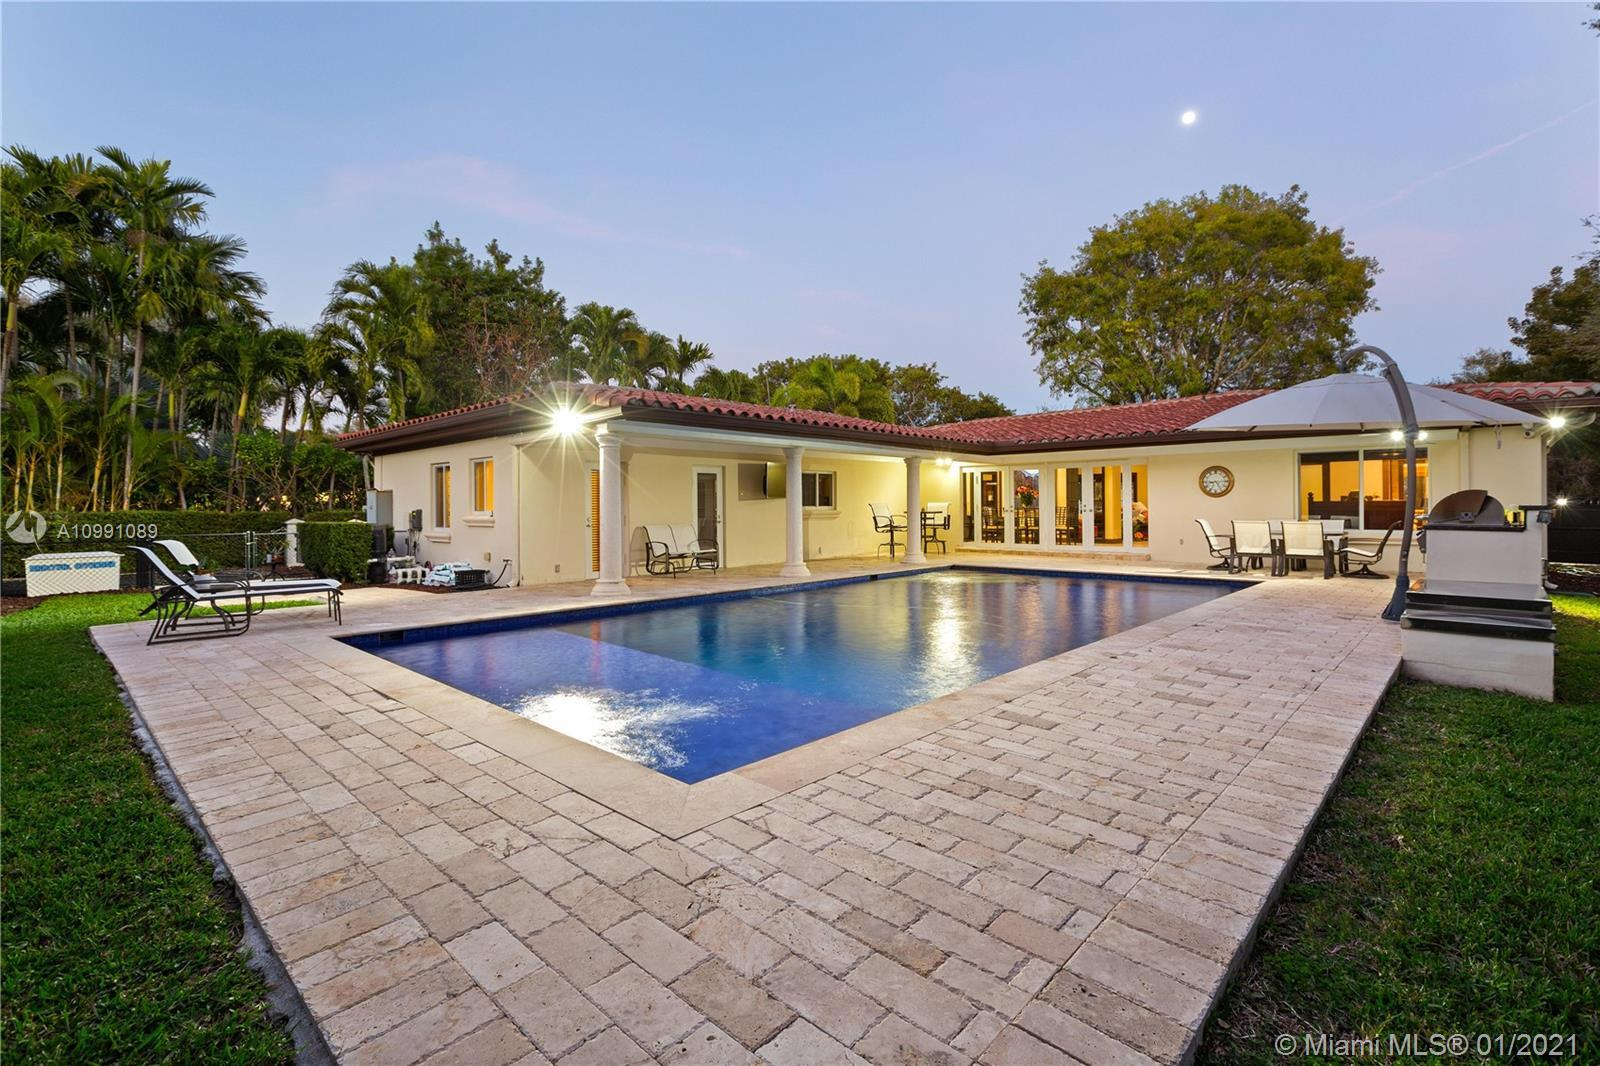 Step into perfection! Spectacular 4-bedroom, 3.5-bath split plan home In the heart of the Gables. Se